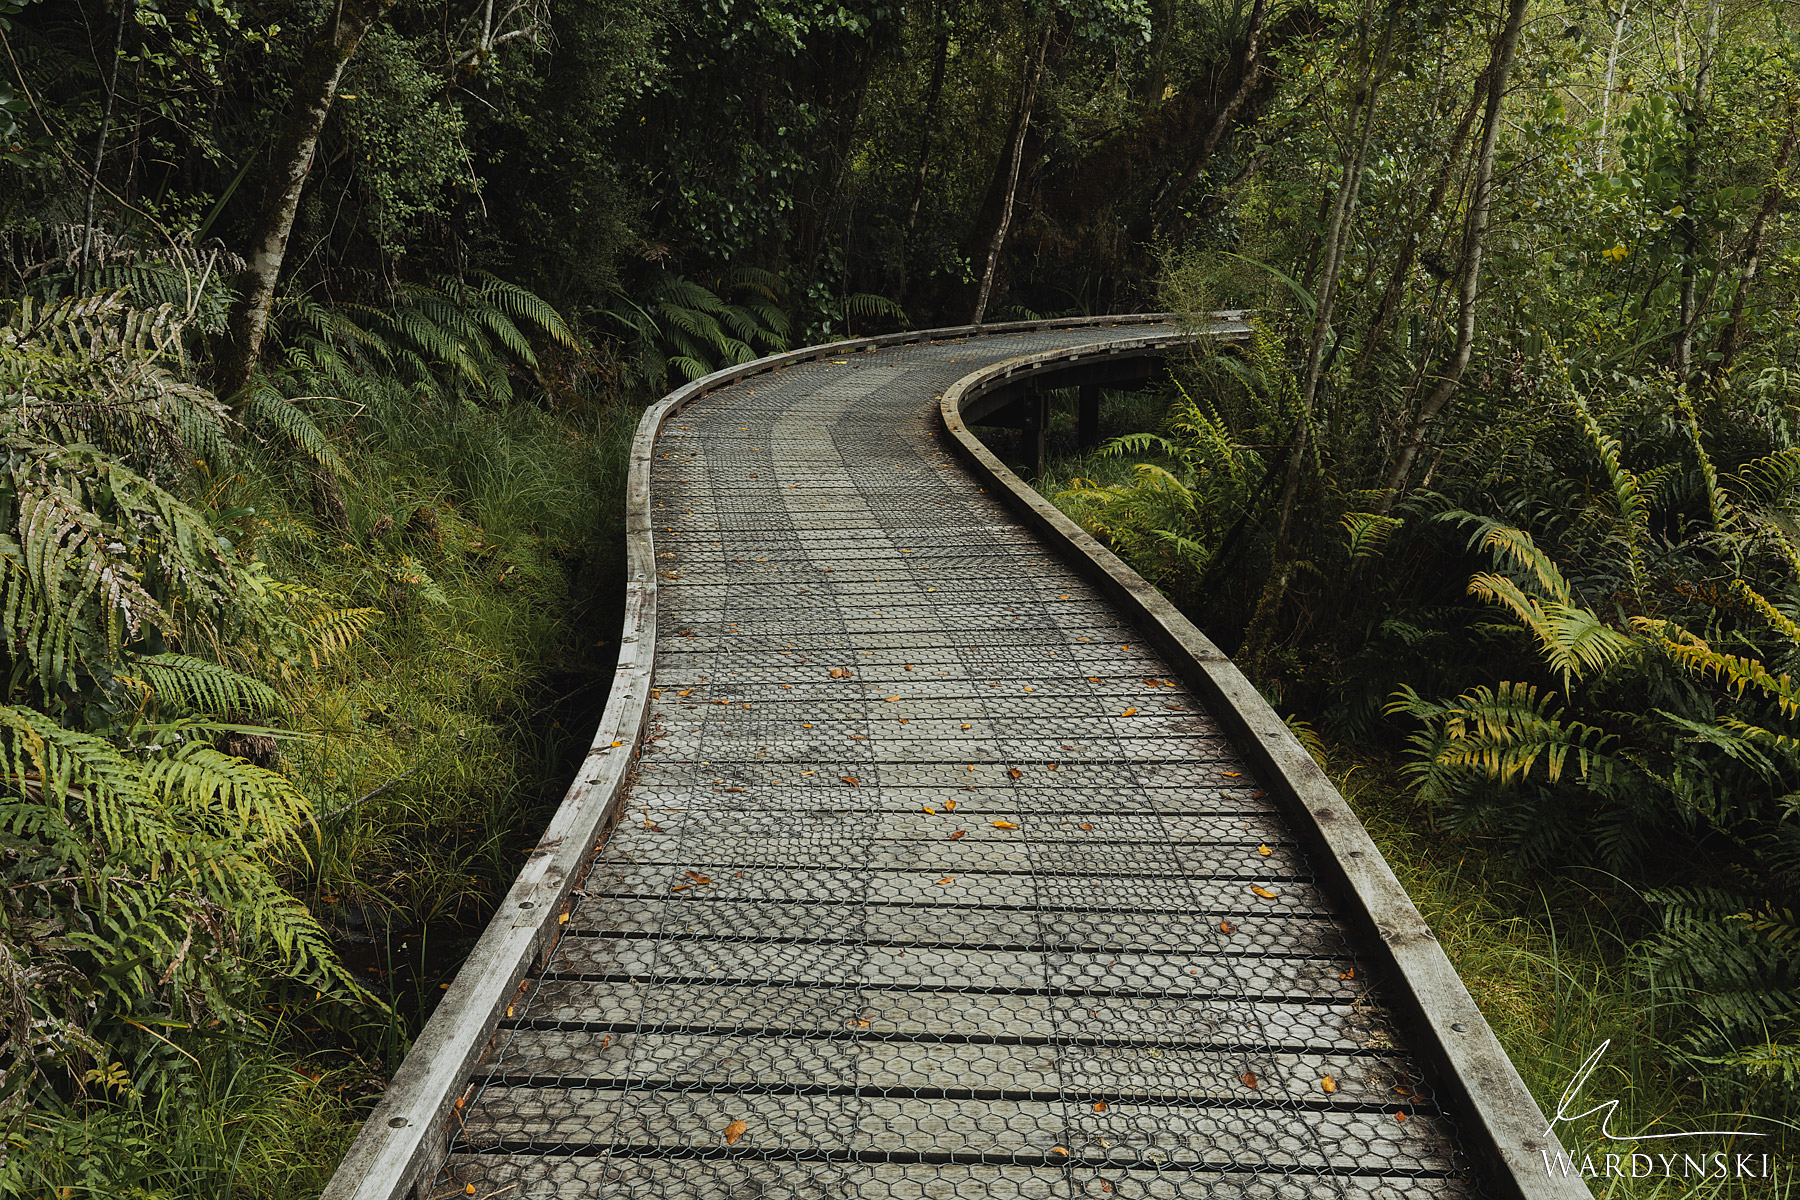 Fine Art Print | Limited Edition of 25  The New Zealand rain forests are world renowned trekking destinations that captivate...